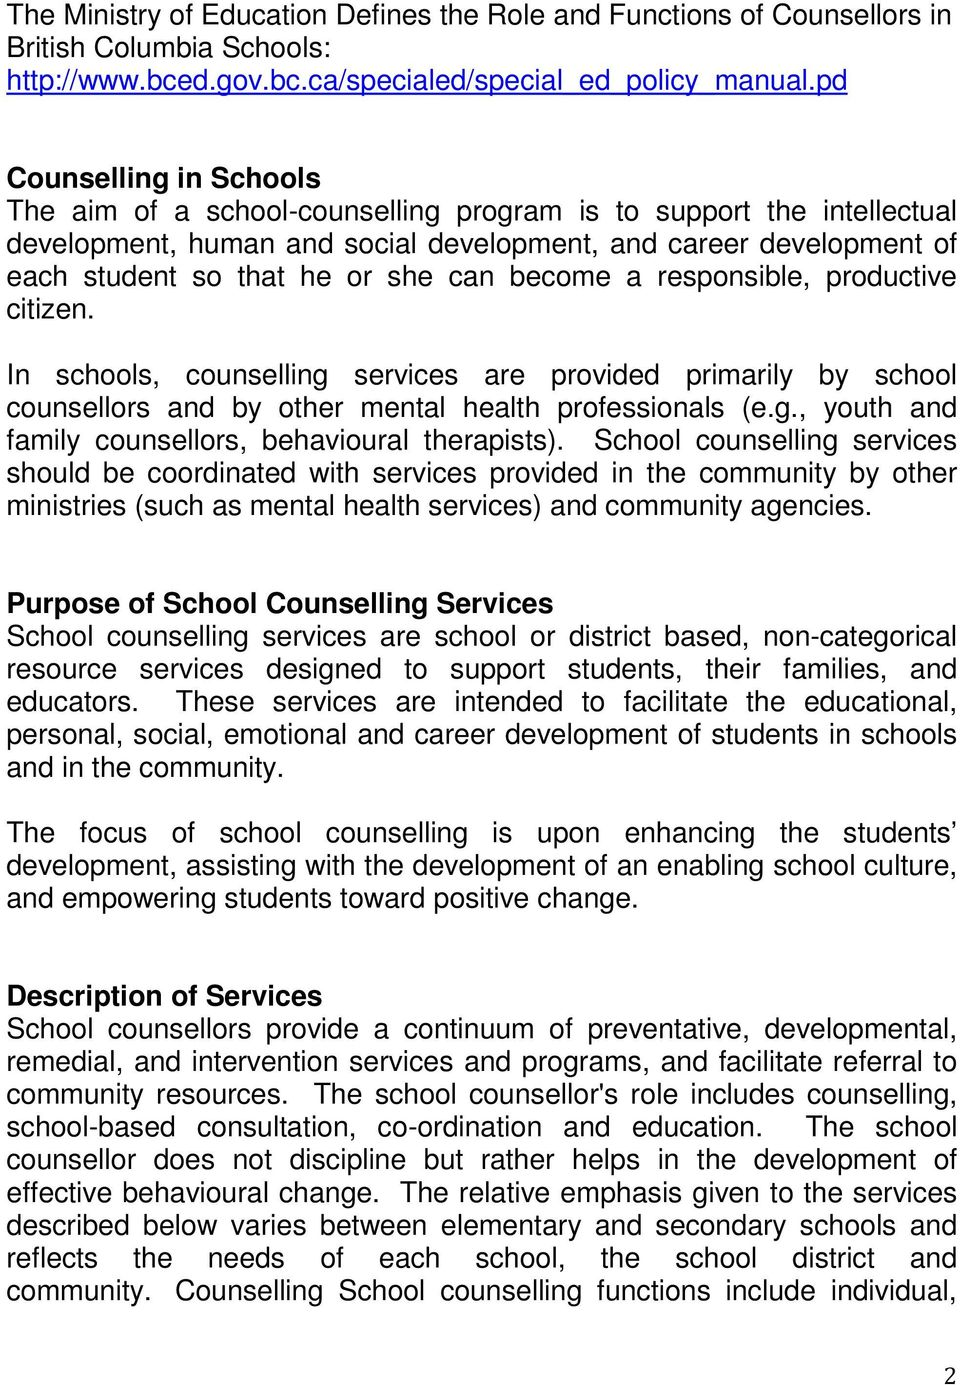 can become a responsible, productive citizen. In schools, counselling services are provided primarily by school counsellors and by other mental health professionals (e.g., youth and family counsellors, behavioural therapists).